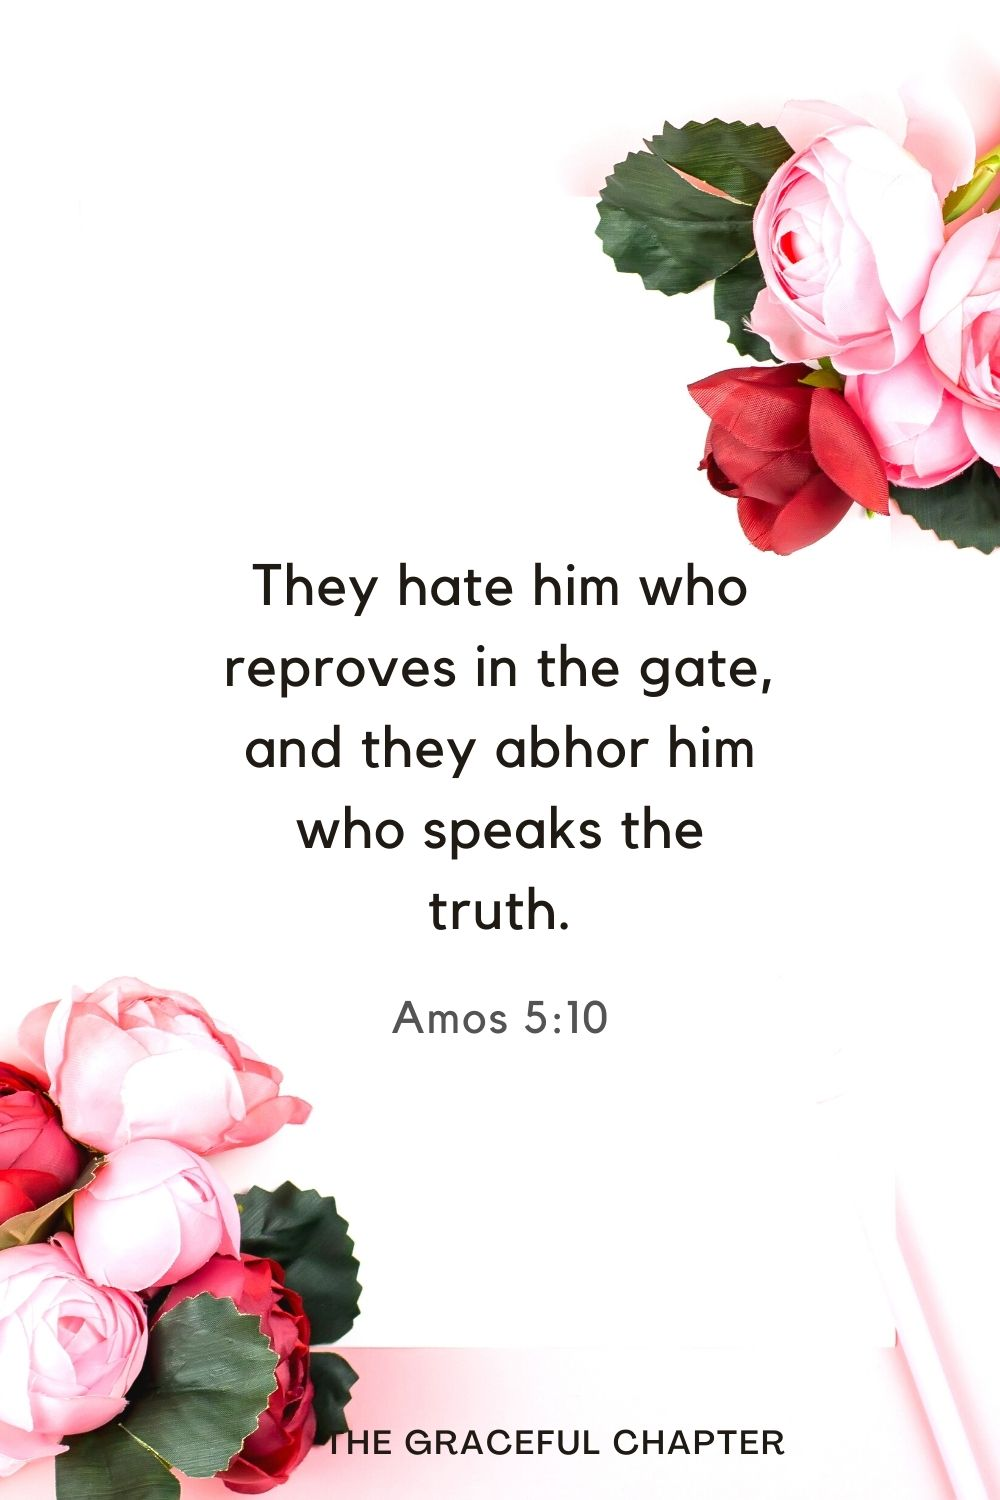 They hate him who reproves in the gate, and they abhor him who speaks the truth. Amos 5:10